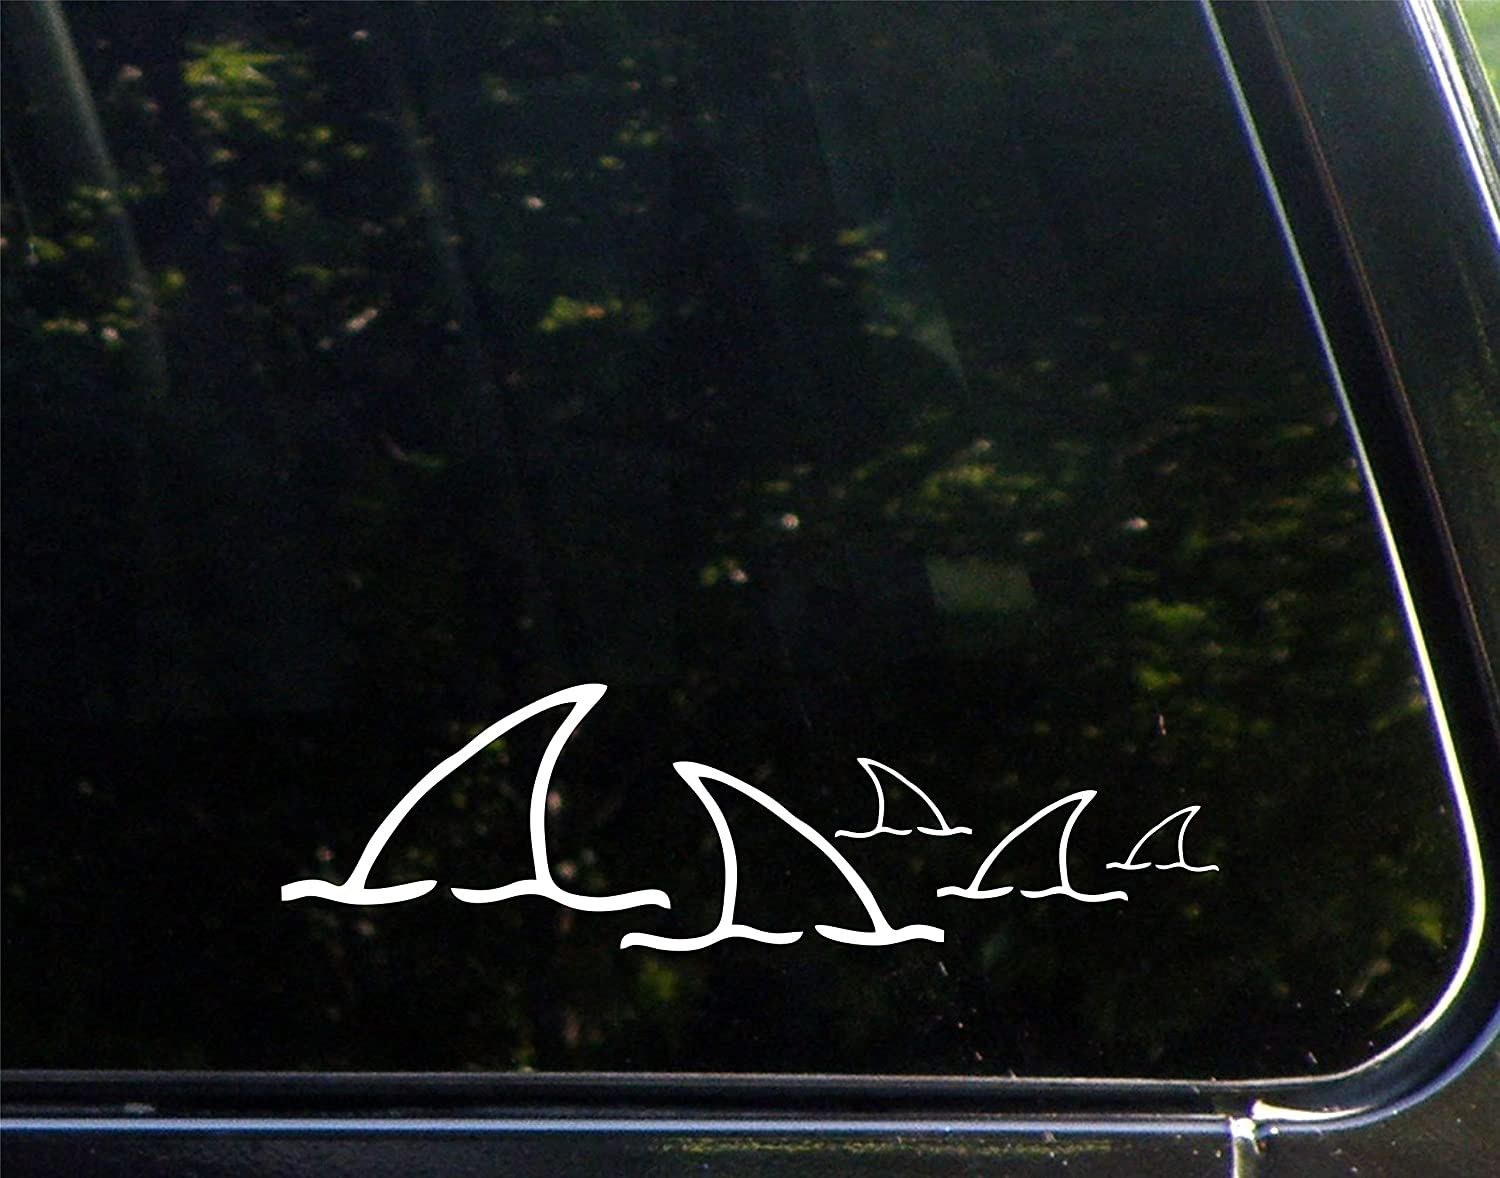 "Diamond Graphics Shark Fin Family - 3 Kids (8-3/4"" X 2-1/2"") Die Cut Decal Bumper Sticker for Windows, Cars, Trucks, Laptops"